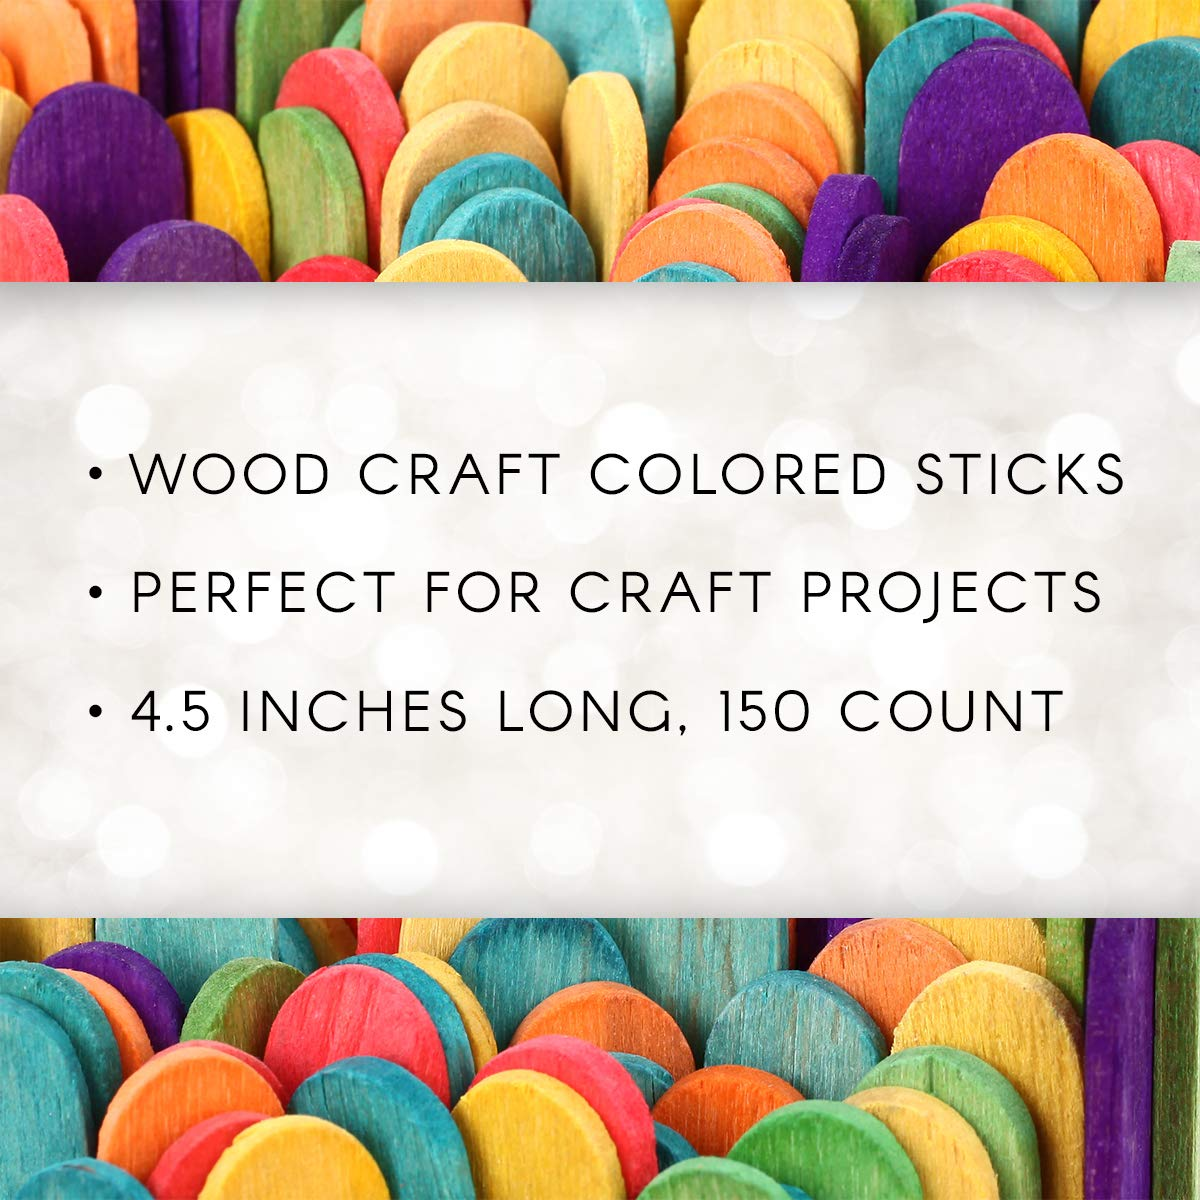 "Perfect for Craft Projects Sturdy Wood Sticks Used for Kids Projects 4 1//2/"" long 120 per pack Multi-Colored Home and More Darice Wood Craft Sticks Classrooms Vibrant Fun Colors"